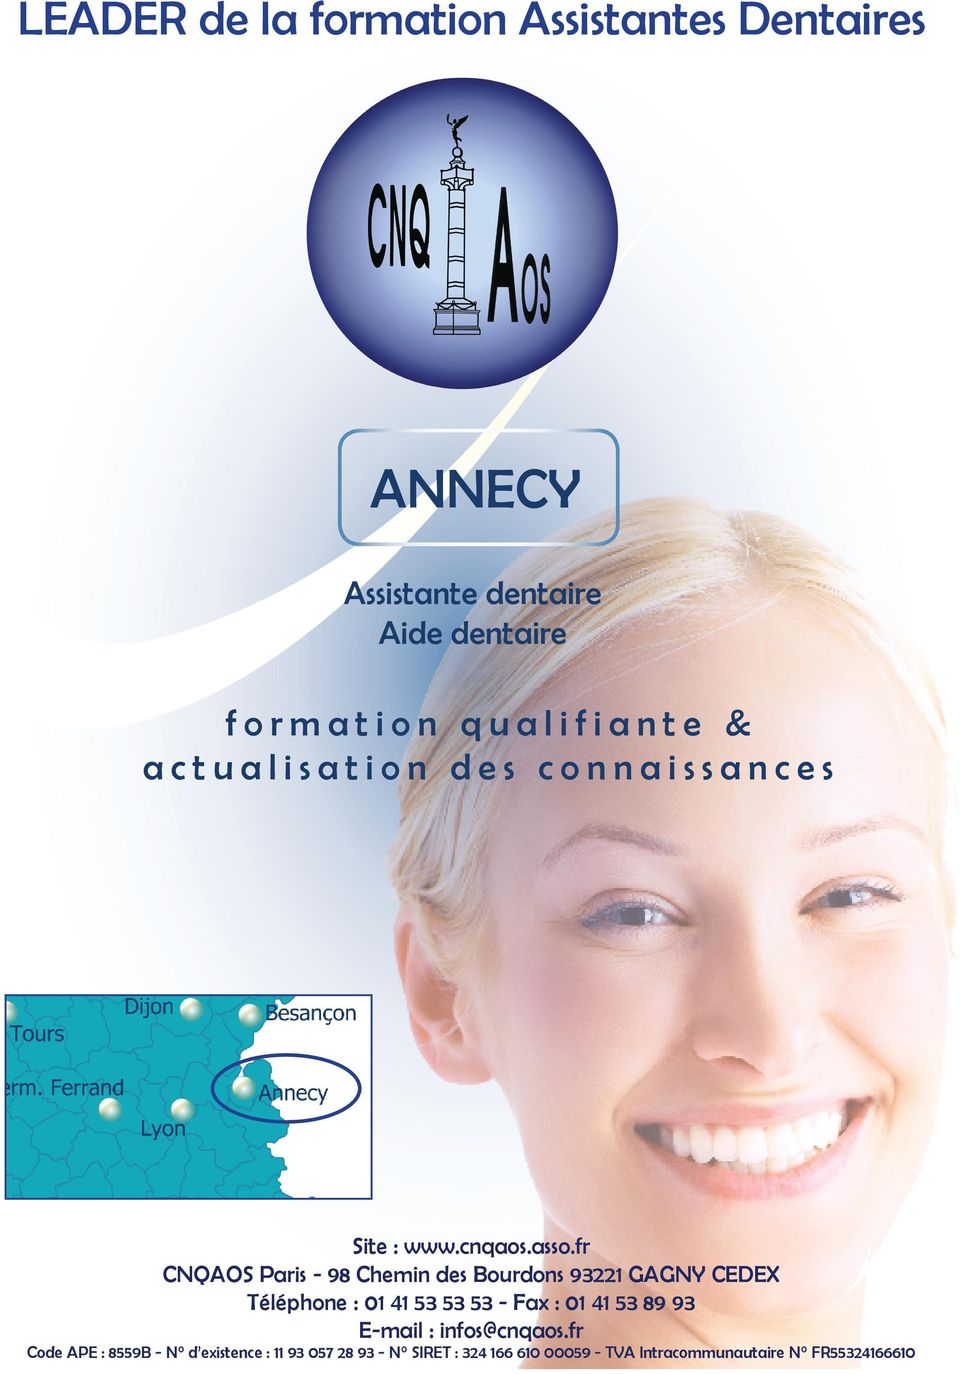 Annecy assistante dentaire aide dentaire formation - Grille des salaires des assistantes dentaires ...